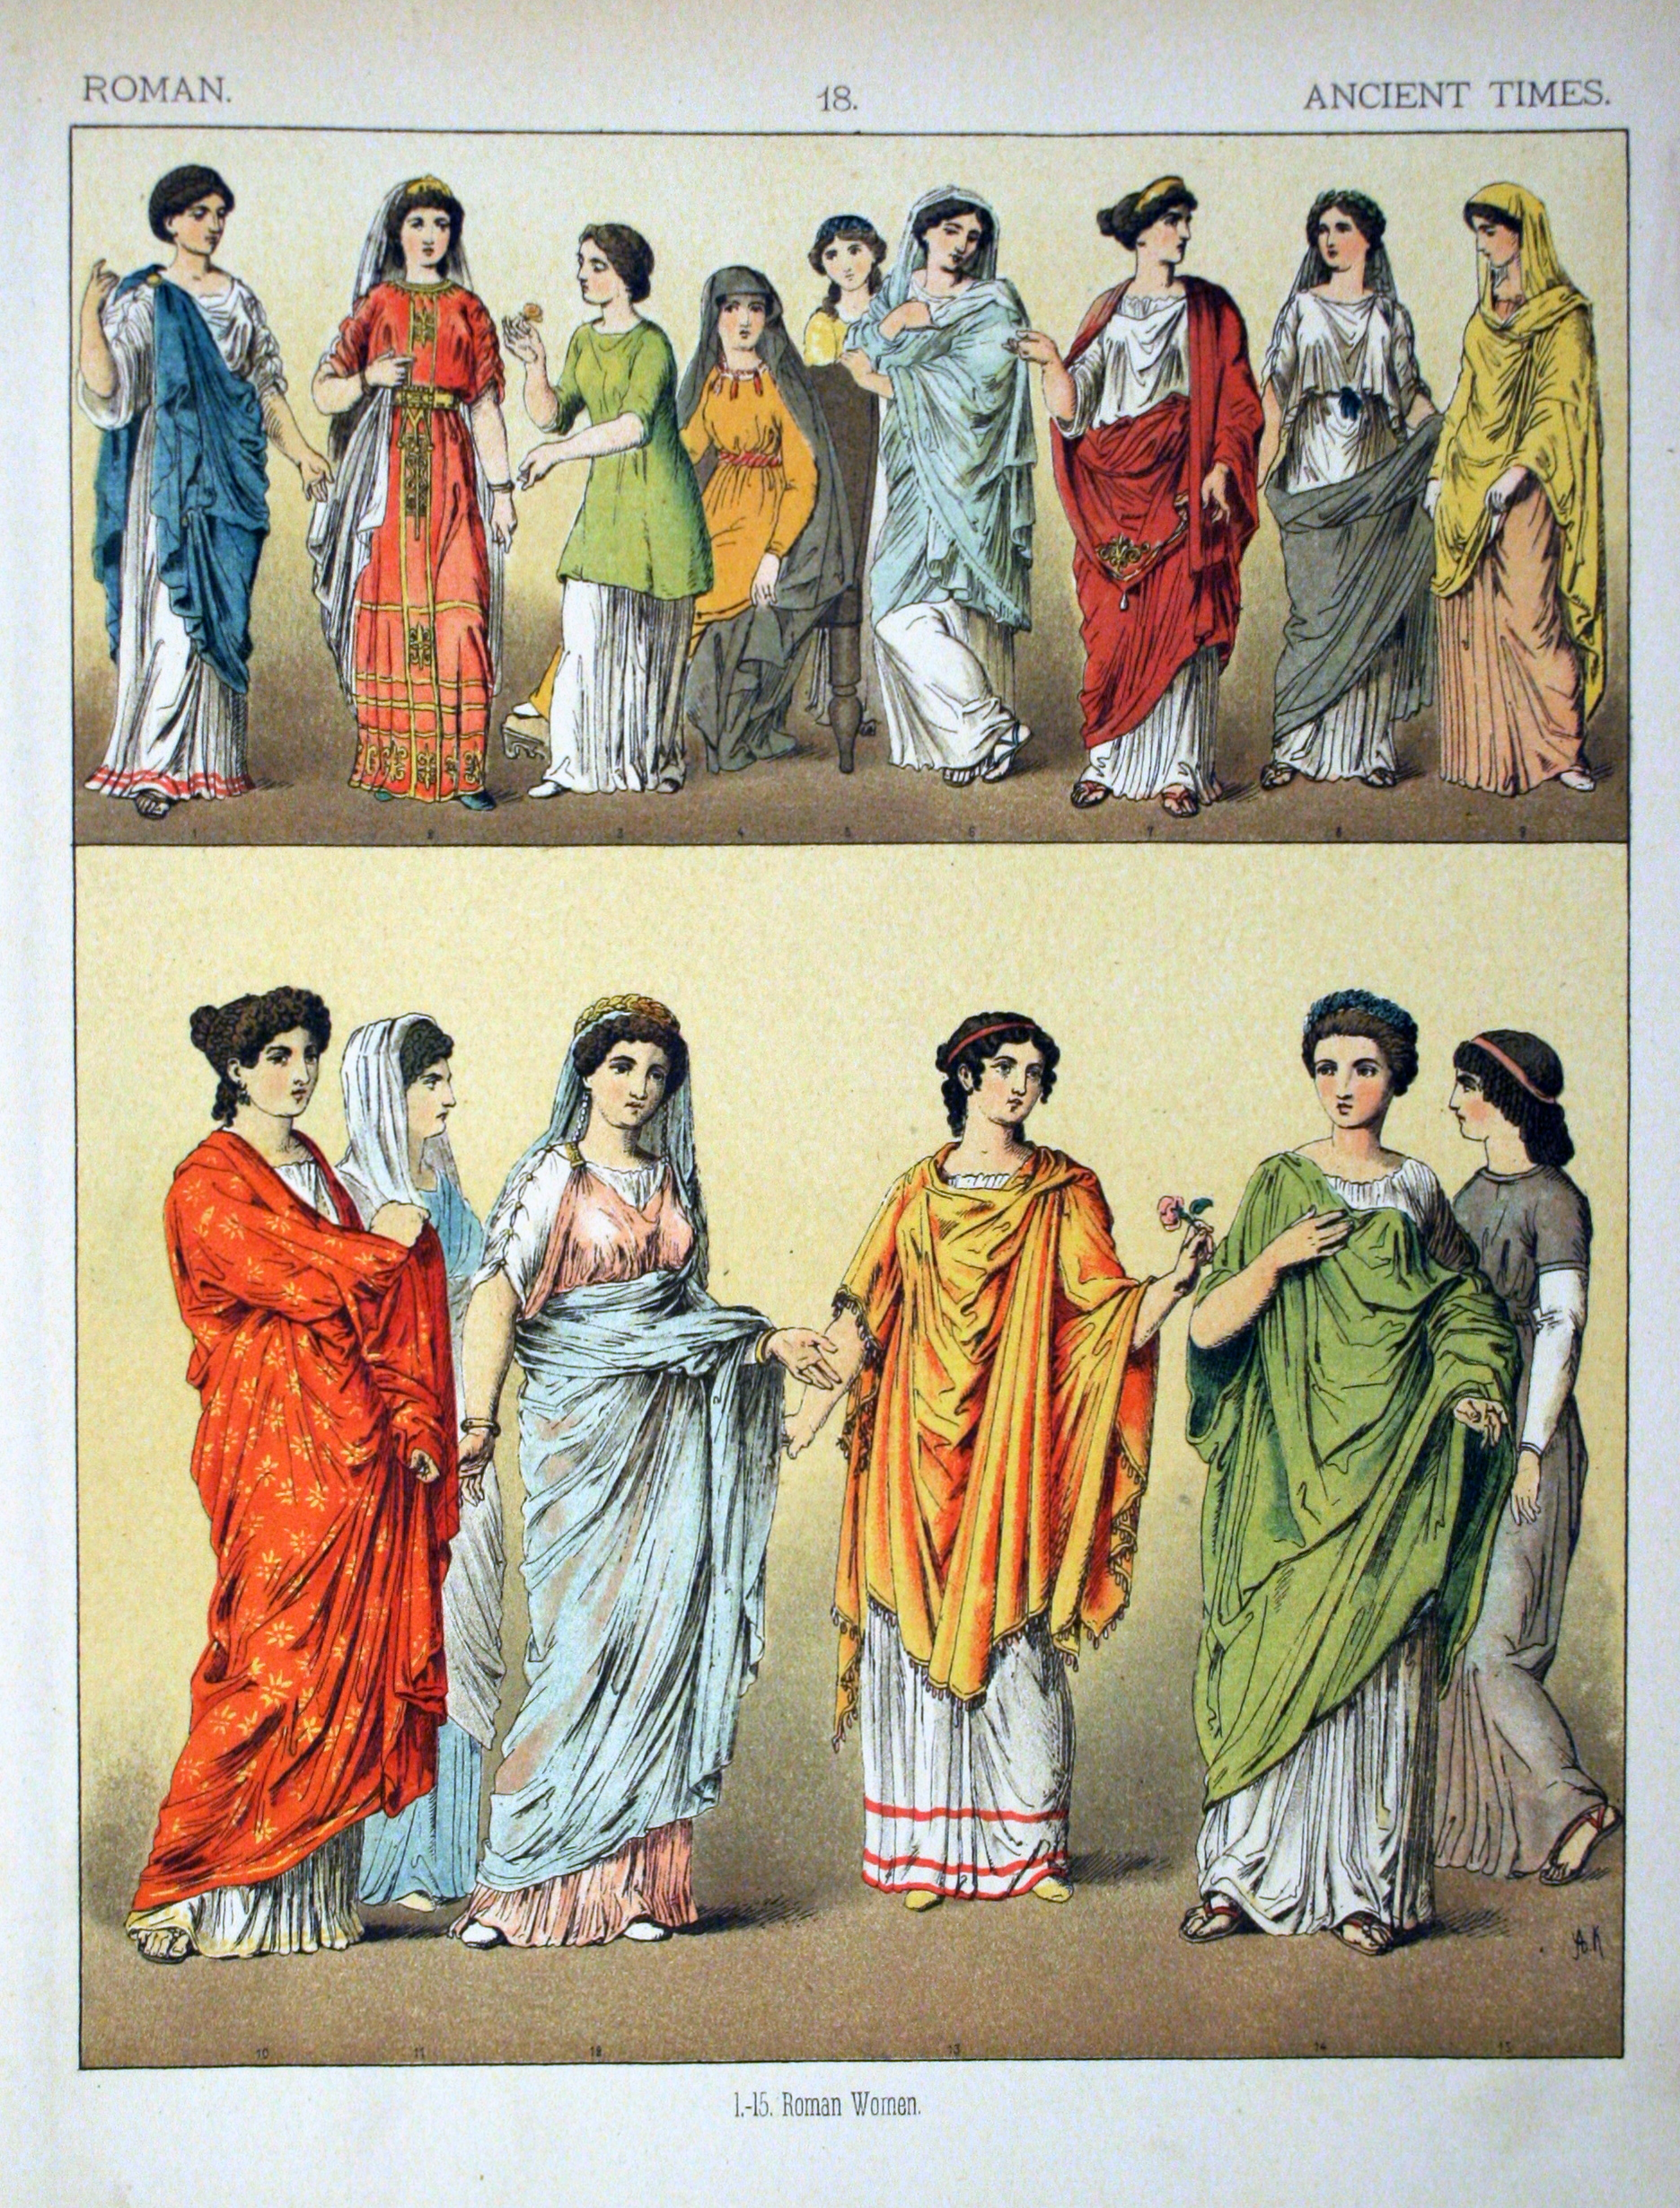 greek roman gender roles essay The roles of greek and roman women essay - greek and roman women lived in a world where strict gender roles were given where each person was judged in terms of compliance with gender-specific standards of conduct.